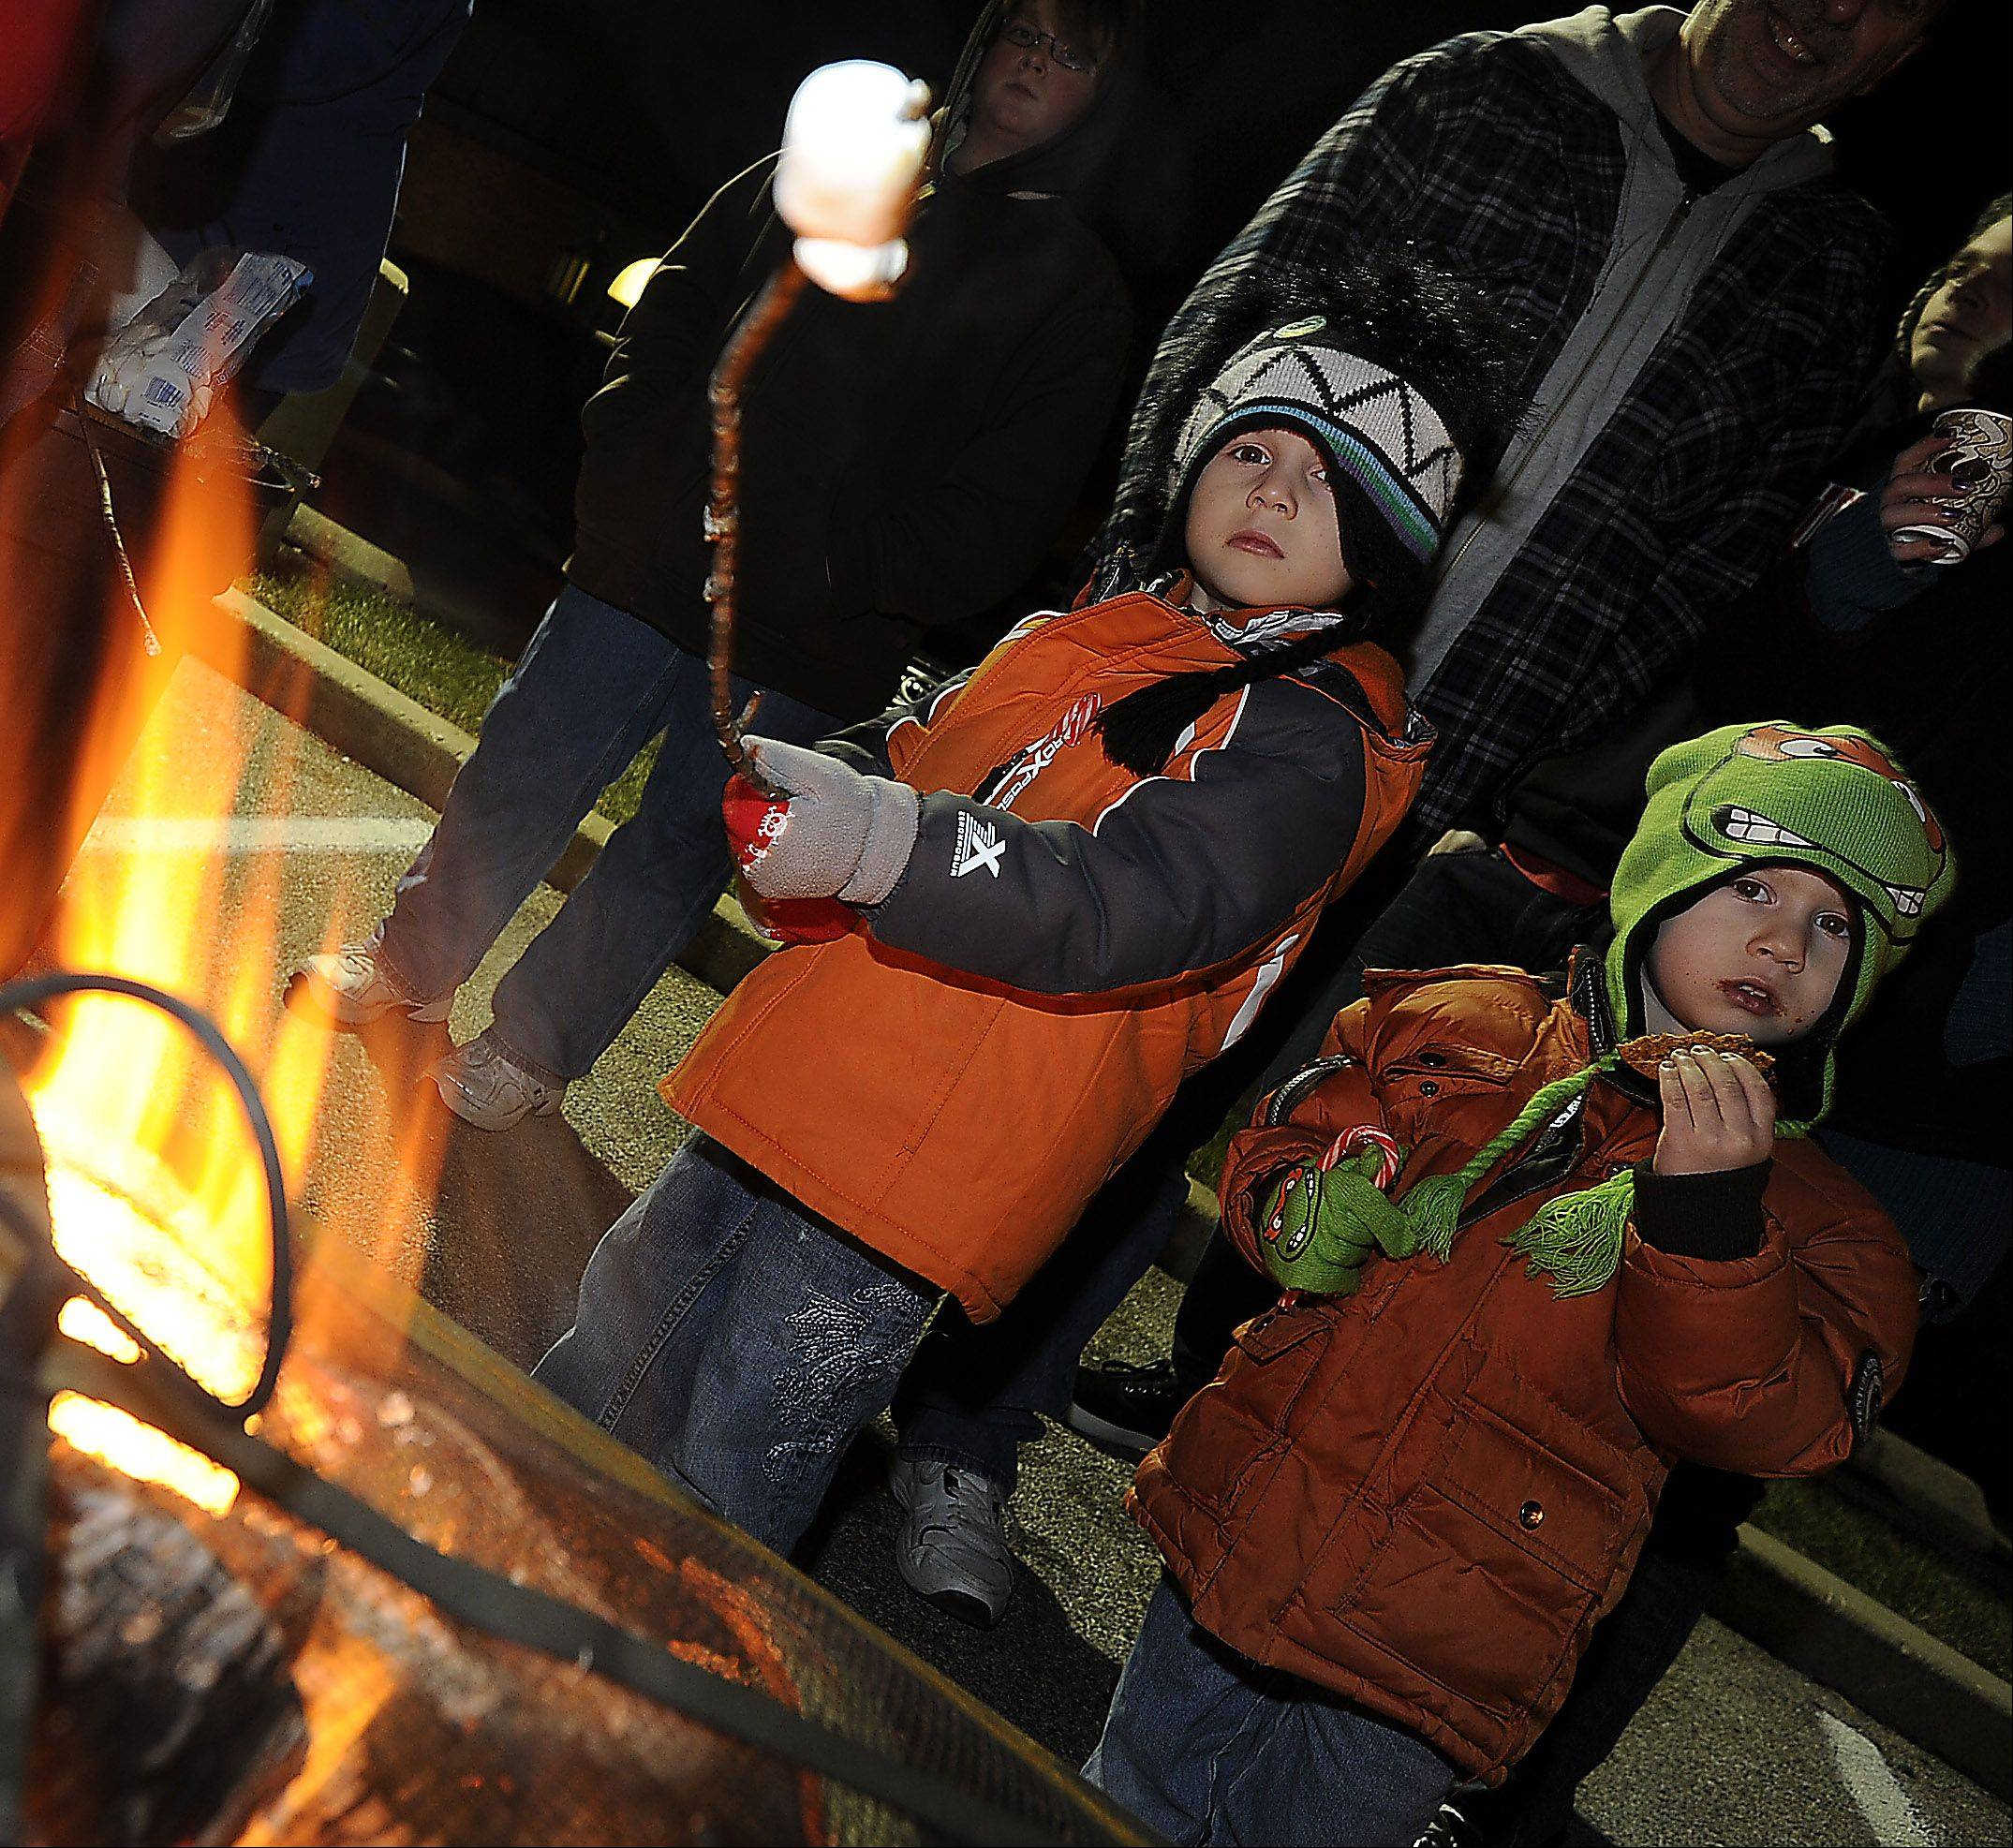 Frank Katz, 5, and his brother, Tommie, 3, of Prospect Heights roast marshmallows before visiting with Santa at the Prospect Heights tree-lighting held at city hall on Saturday.